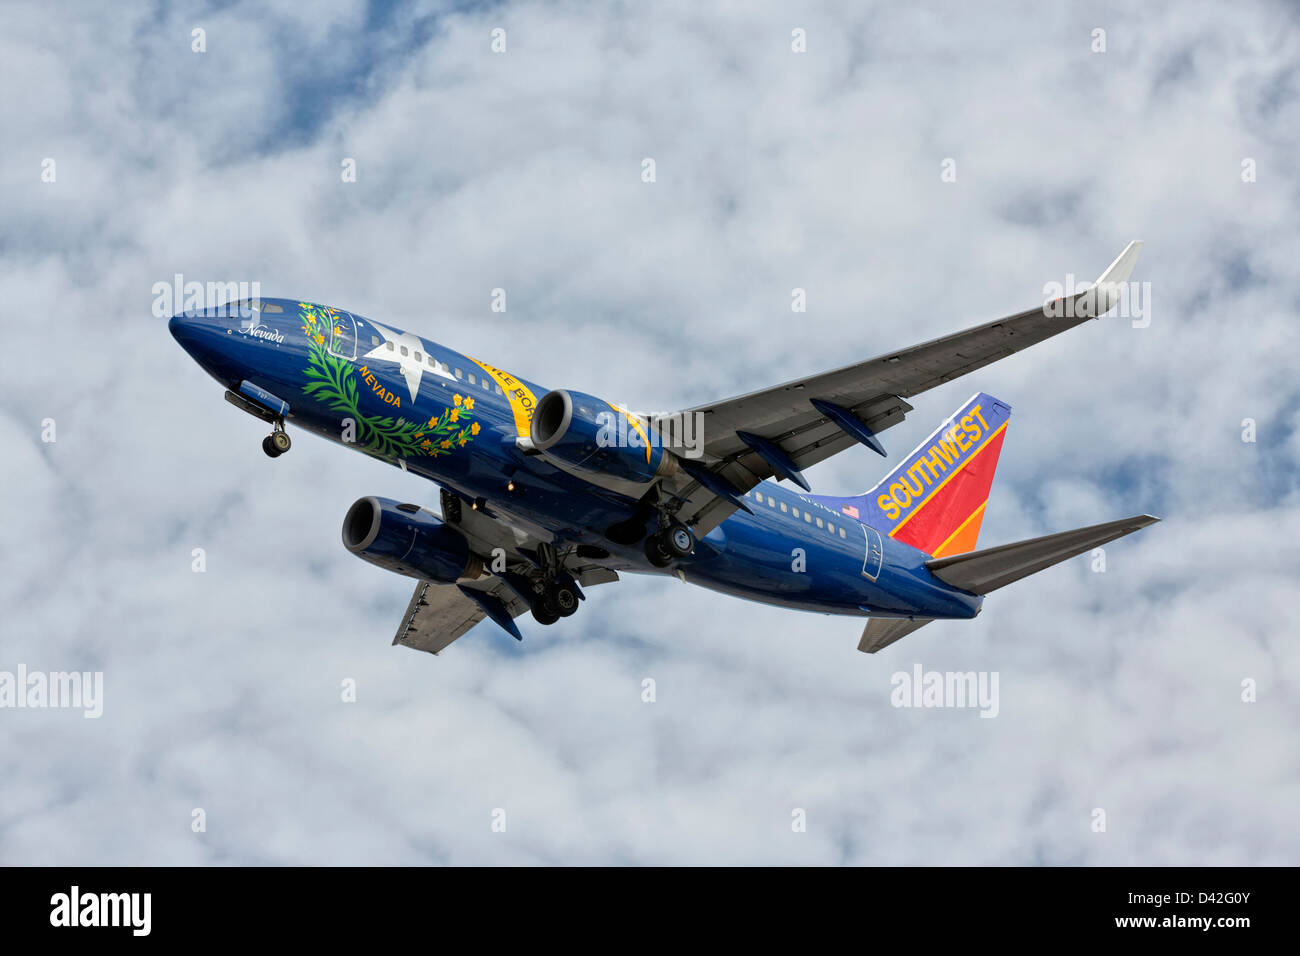 A Boeing 737 of Southwest airlines on final approach - Special Nevada state paint scheme - Stock Image